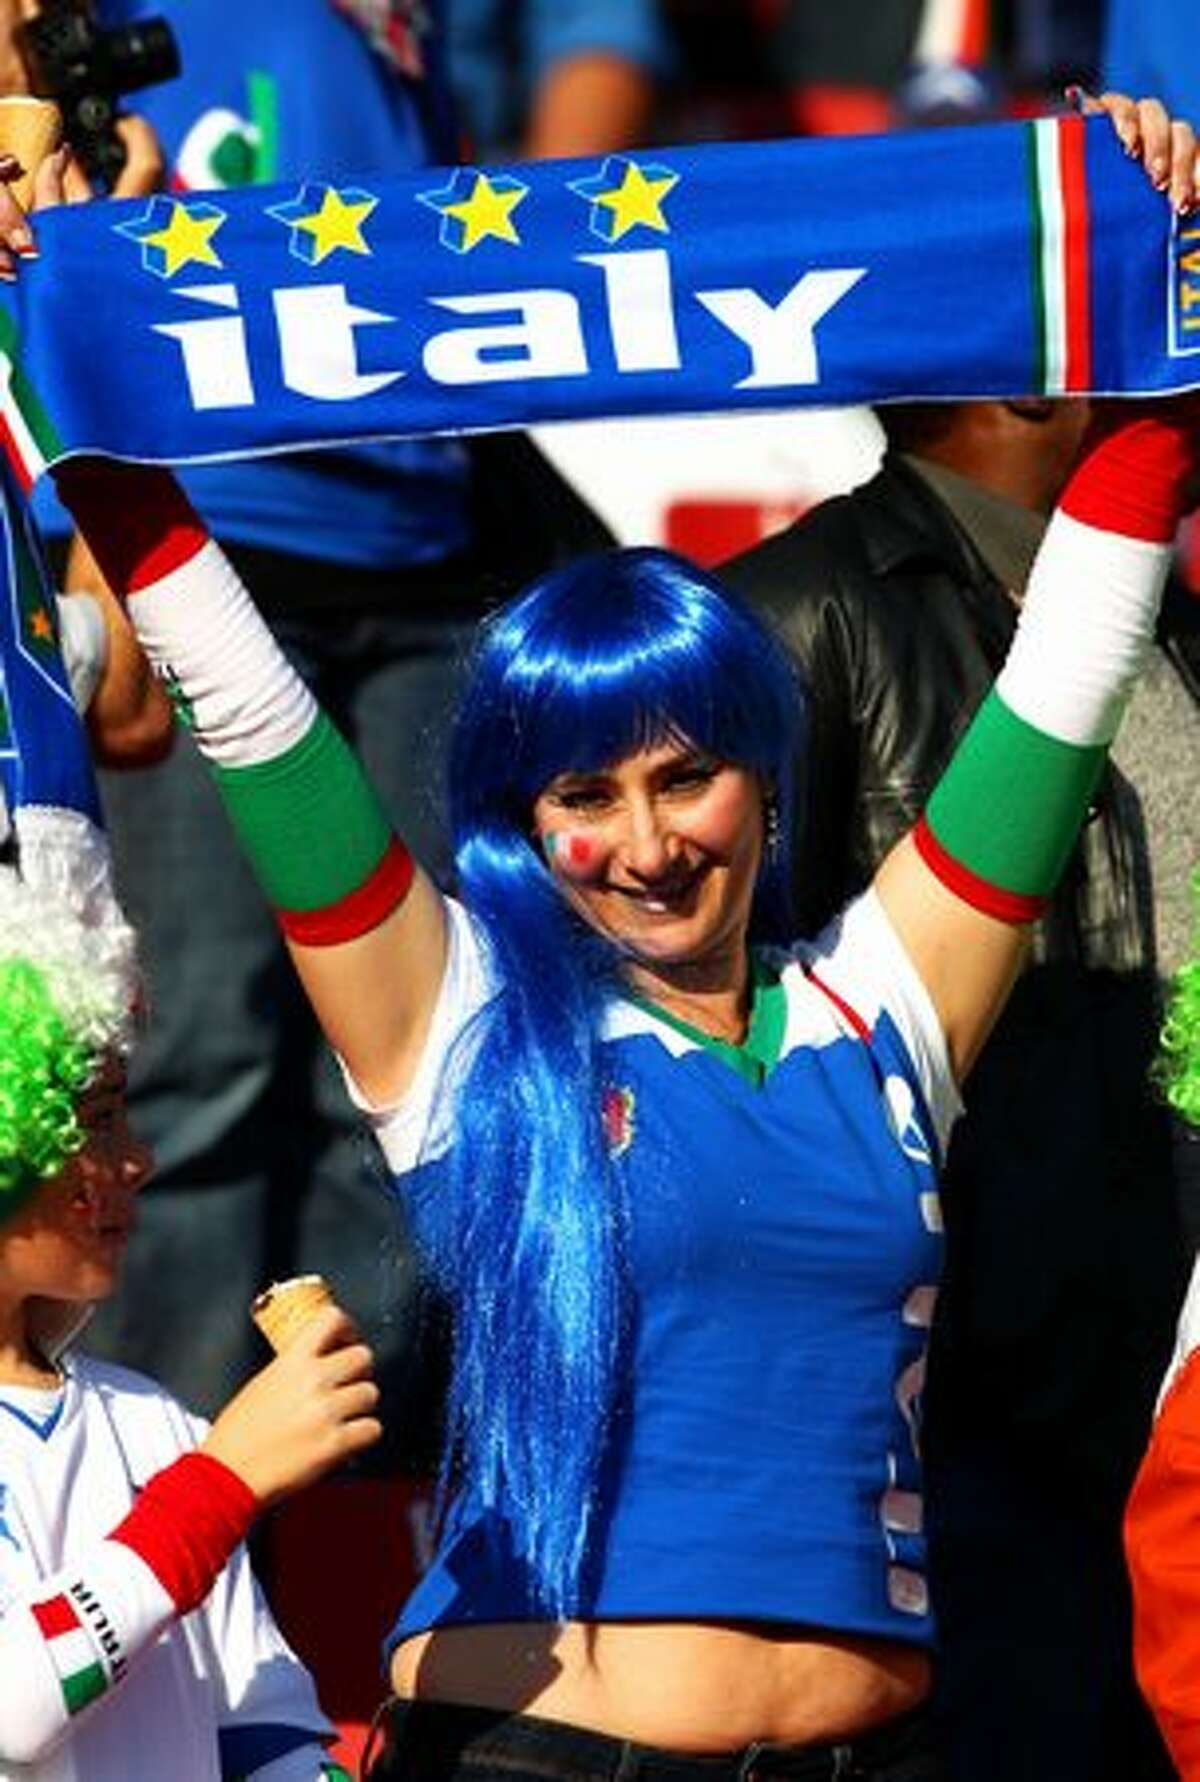 An Italy fan enjoys the atmosphere prior to the 2010 FIFA World Cup South Africa Group F match between Slovakia and Italy at Ellis Park Stadium on June 24, 2010 in Johannesburg, South Africa.